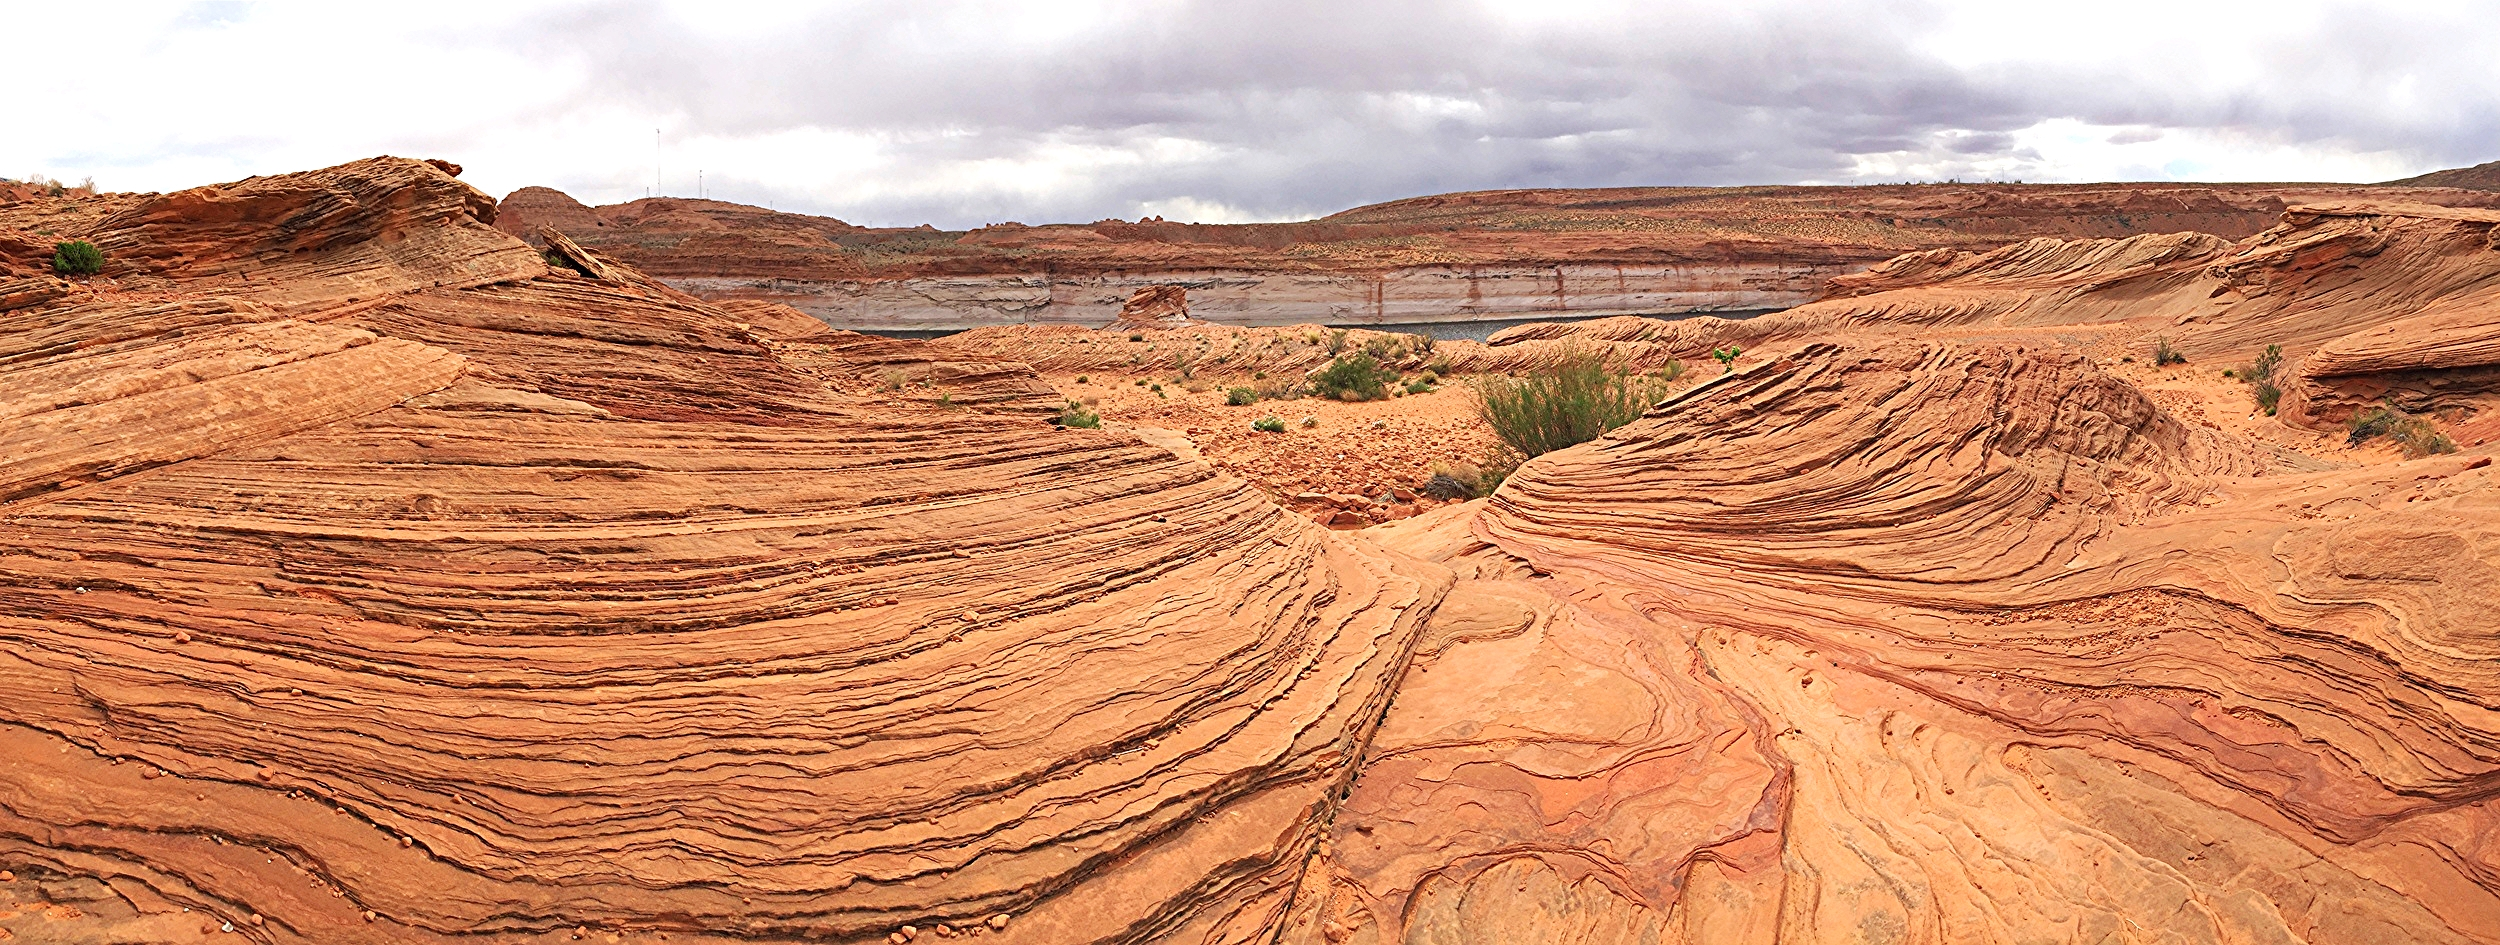 Overlooking Colorado River near Glen Canyon Dam